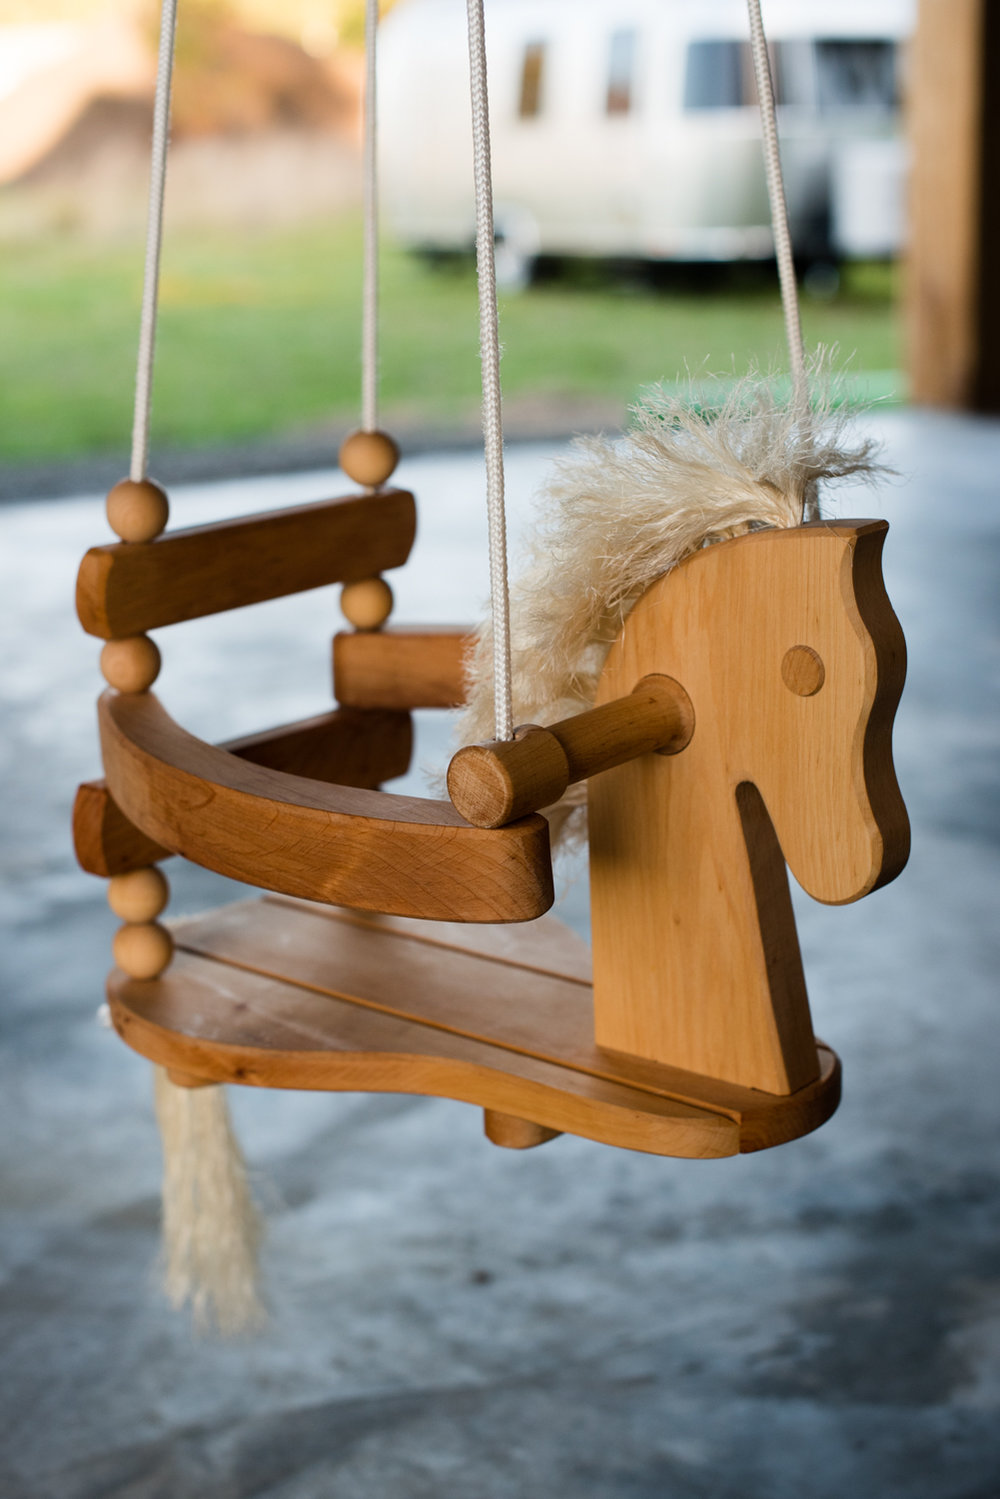 The sweetest rocking horse hanging out in the new barn.